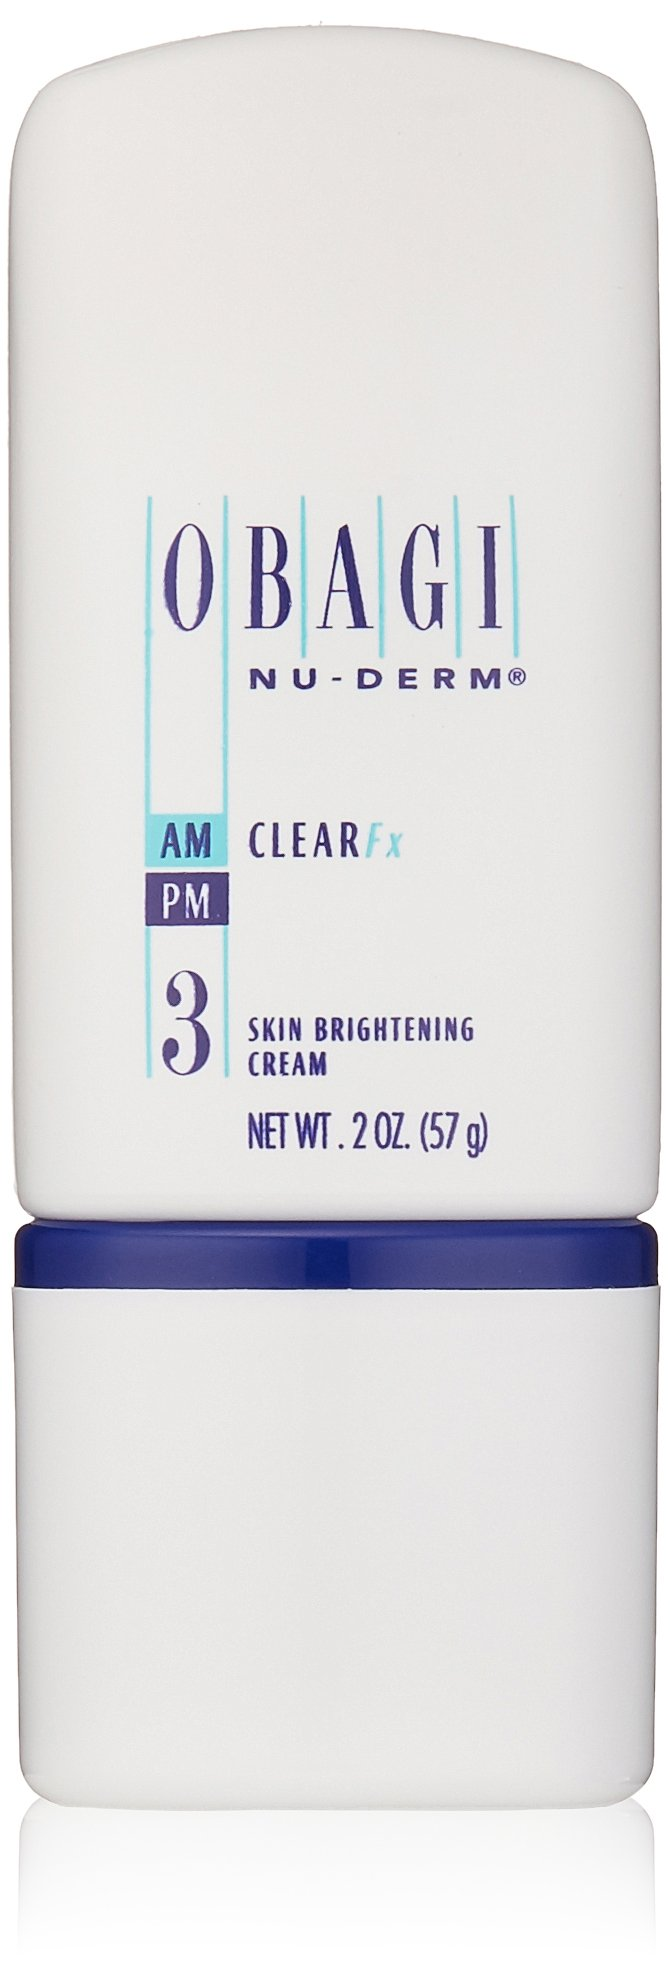 Obagi Nu-Derm Clear Fx, 2 oz. by Obagi Medical (Image #1)